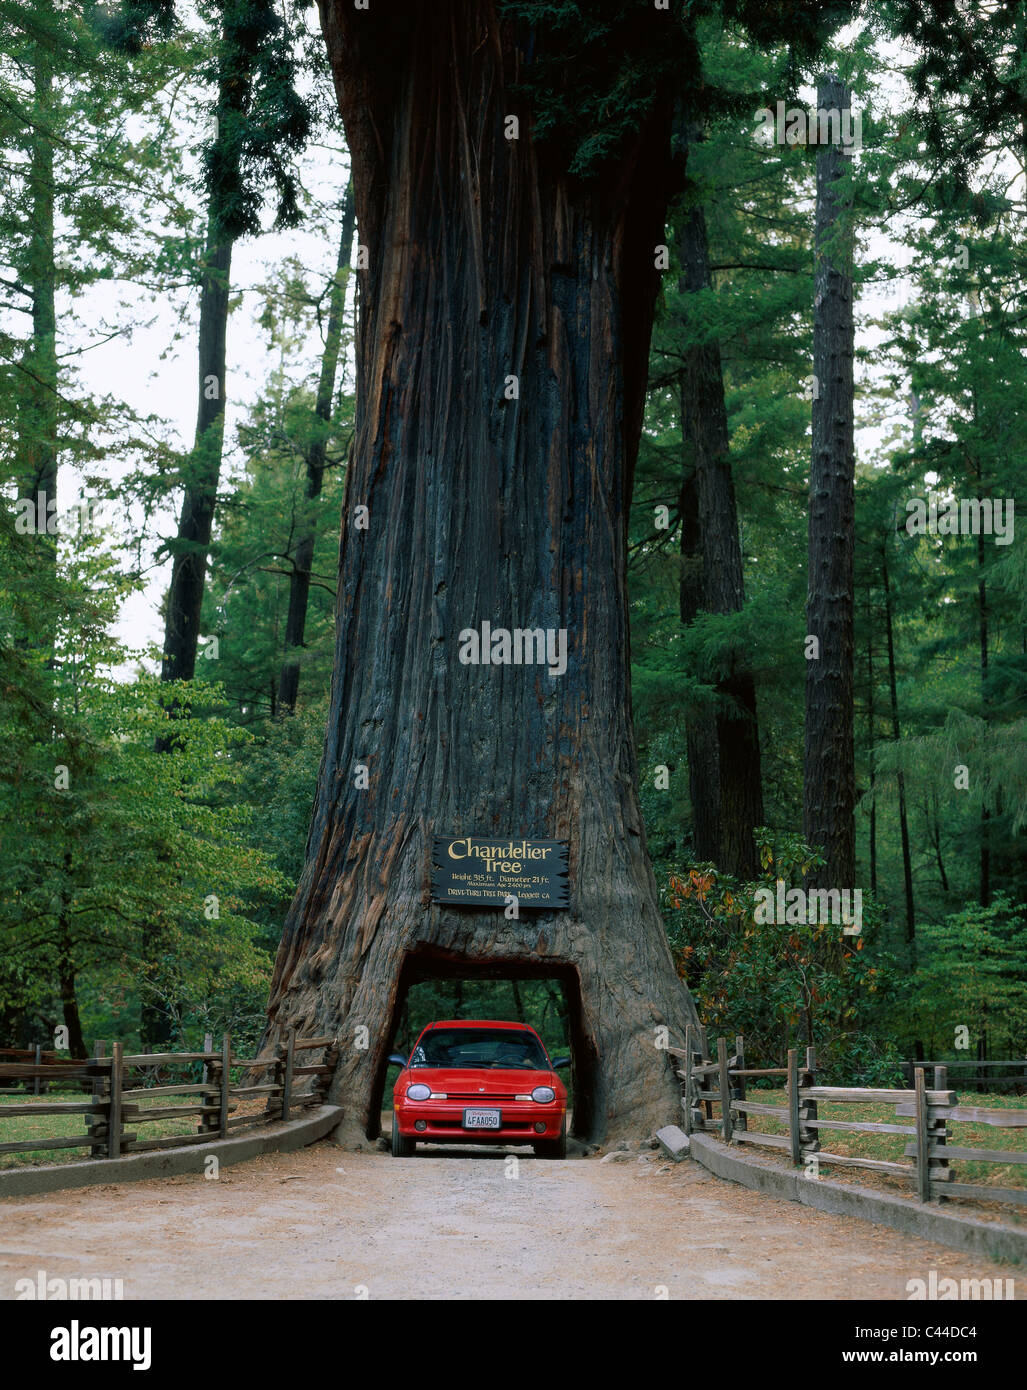 America California Car Chandelier Drive Driving Holiday Landmark Leggett Redwood Through Thru Tourism Travel Tree